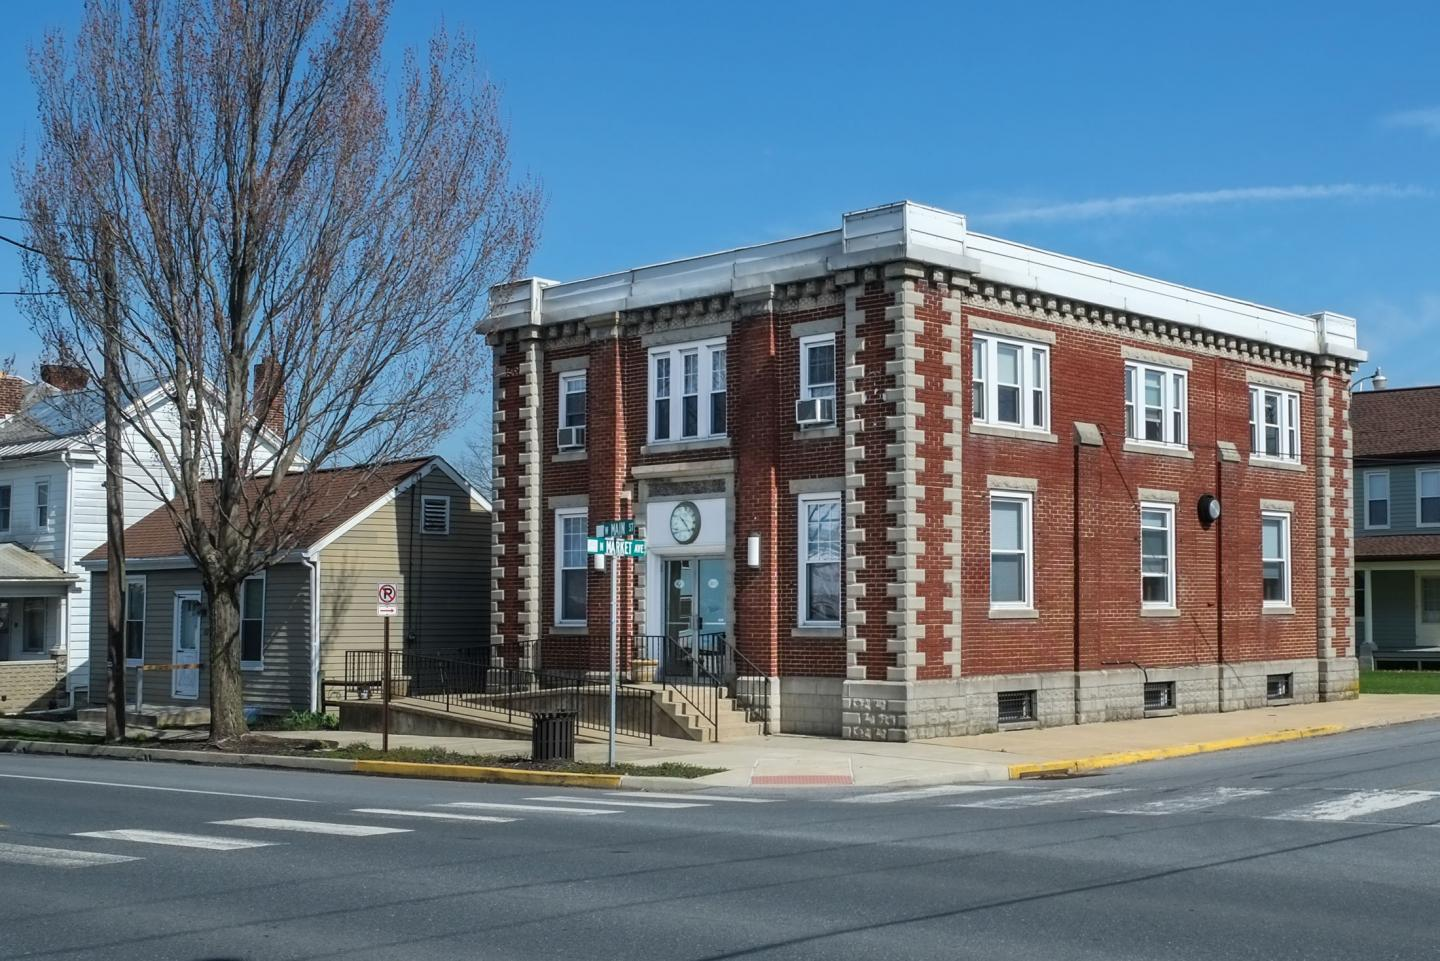 RGM    Watch Company is housed in a former bank in the small town of Mount Joy, Pennsylvania